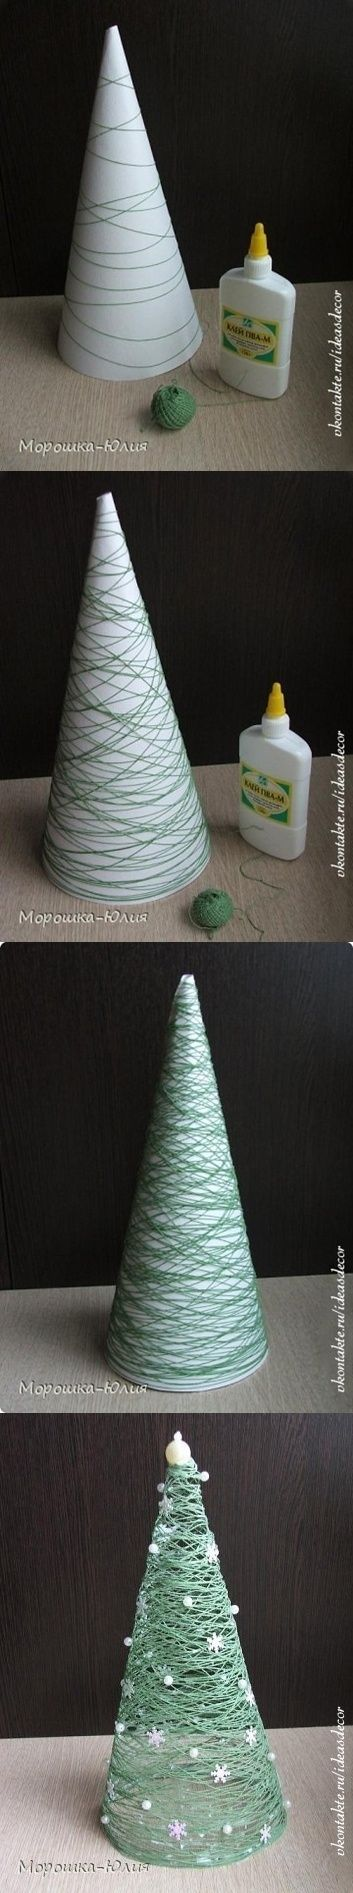 thread Christmas tree